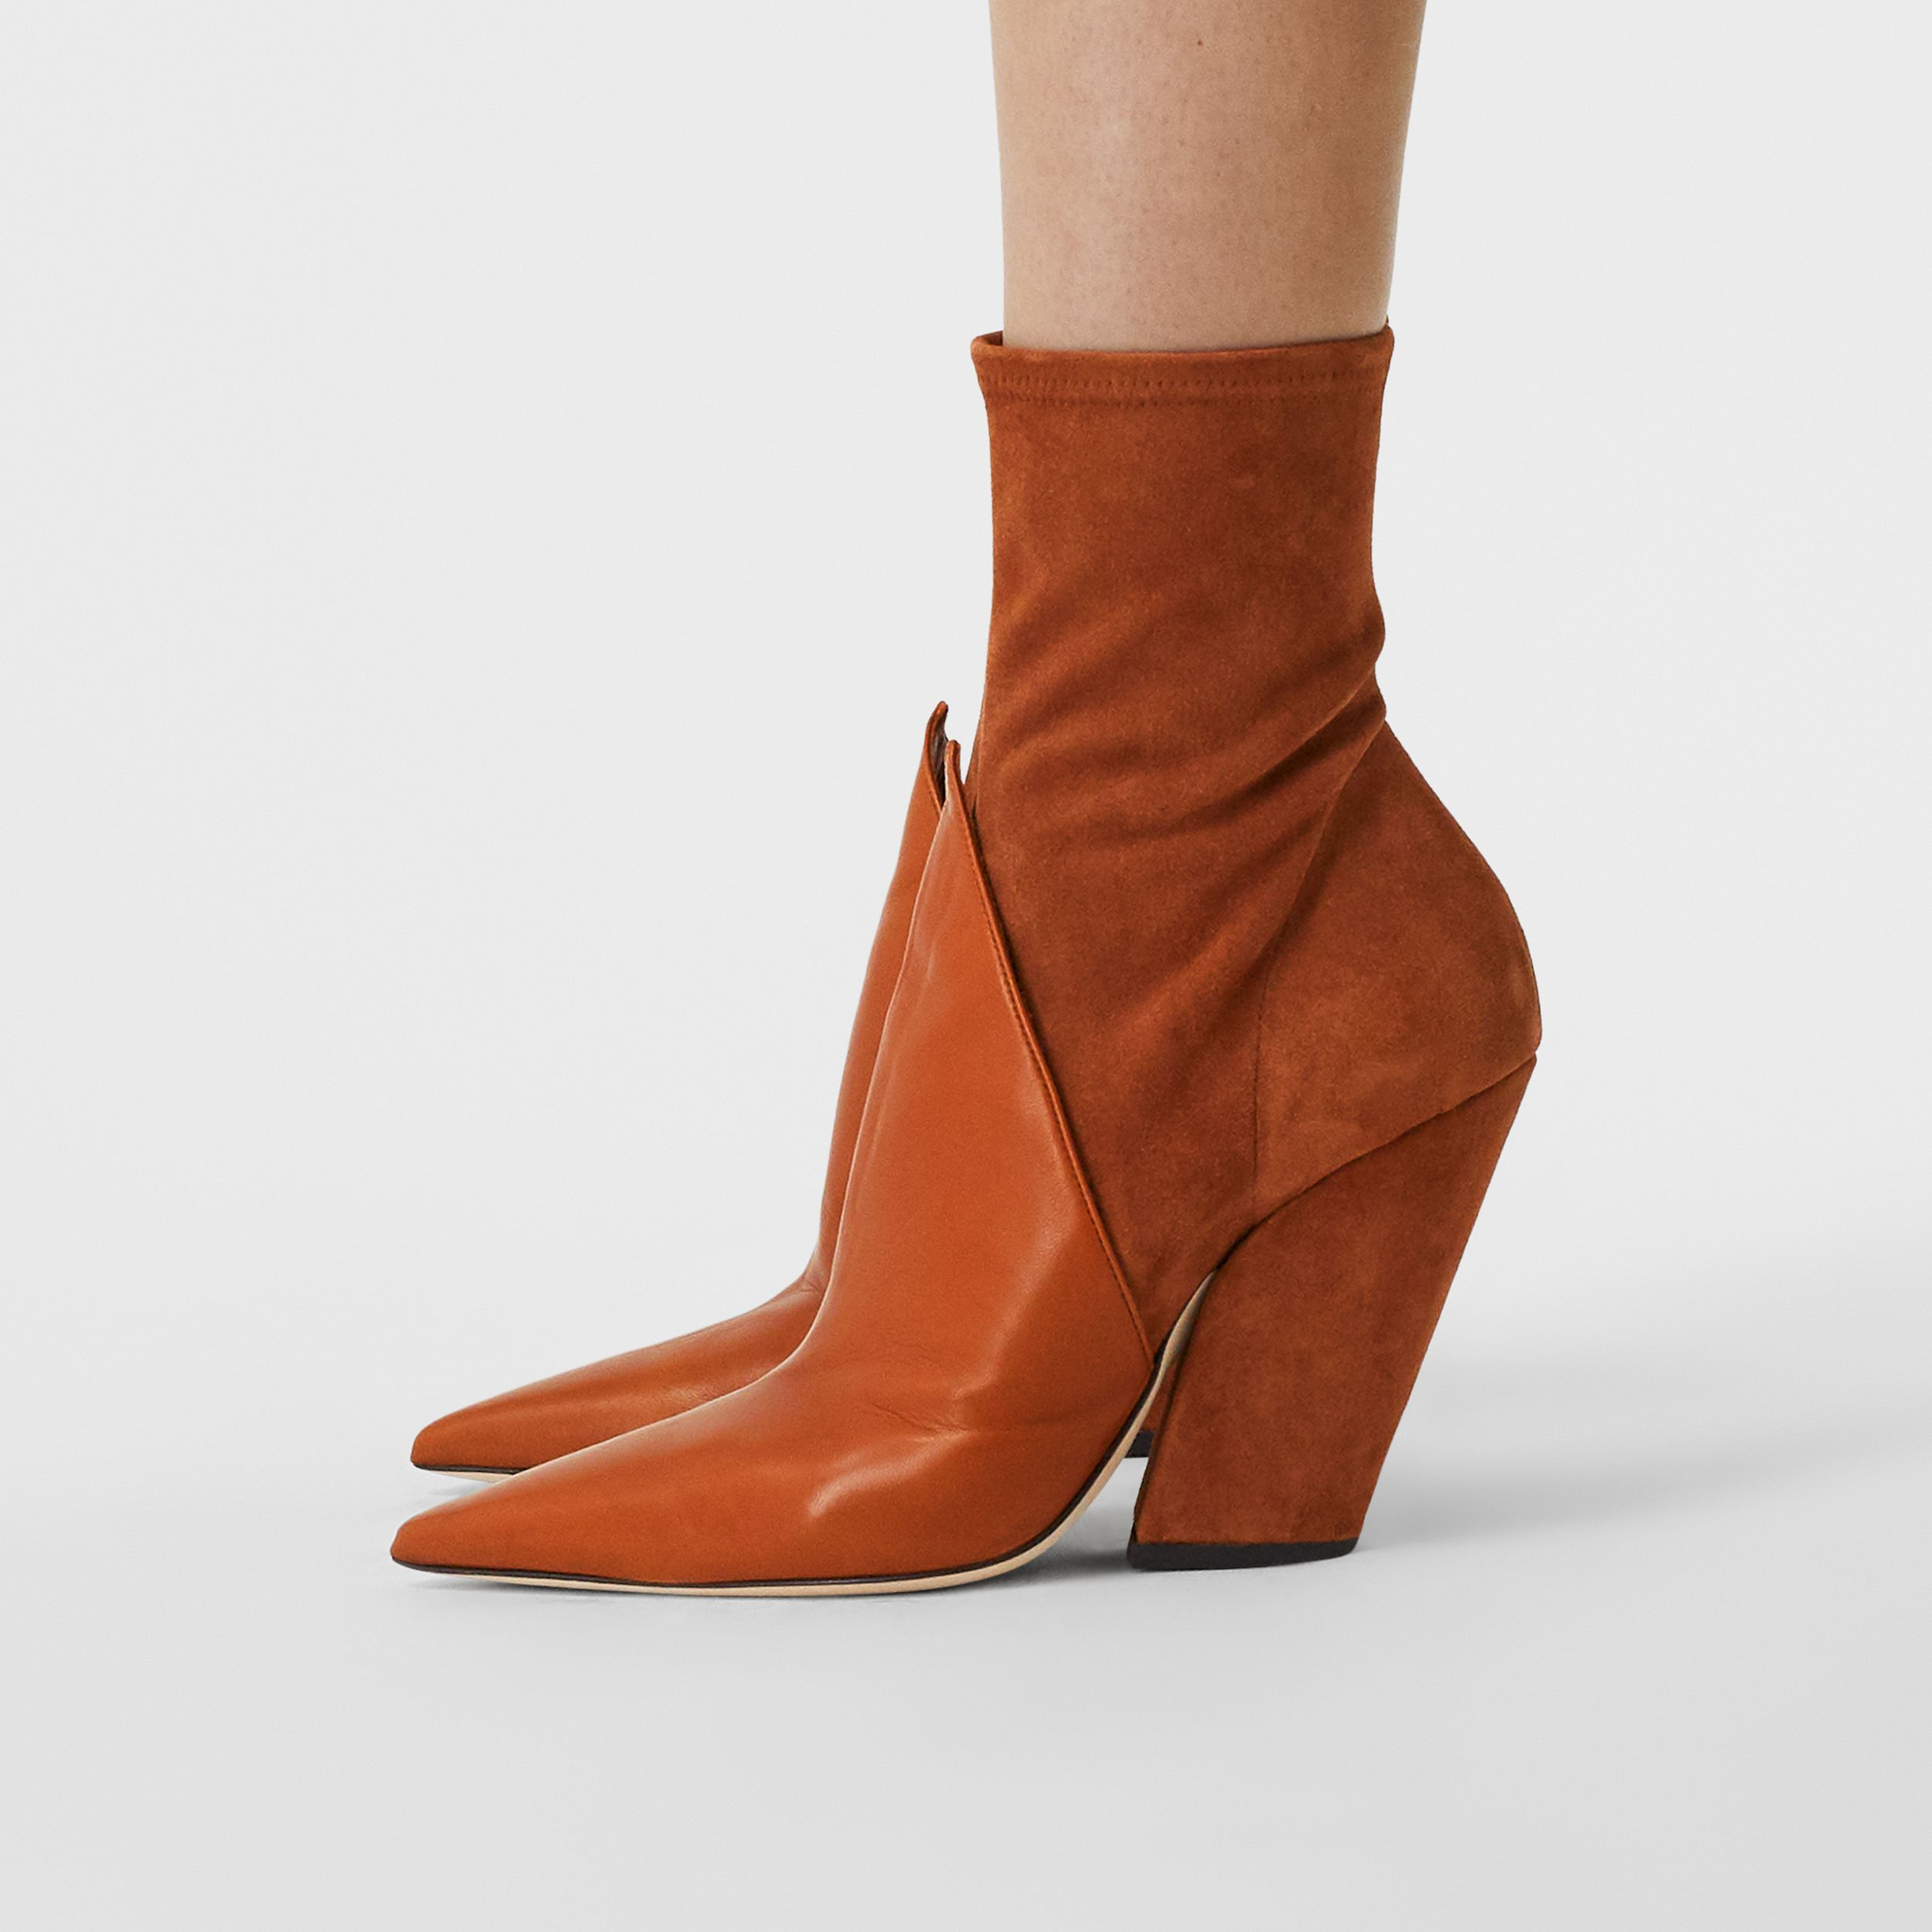 Panelled Suede and Lambskin Ankle Boots in Nutmeg - Women | Burberry Hong Kong S.A.R. - 3